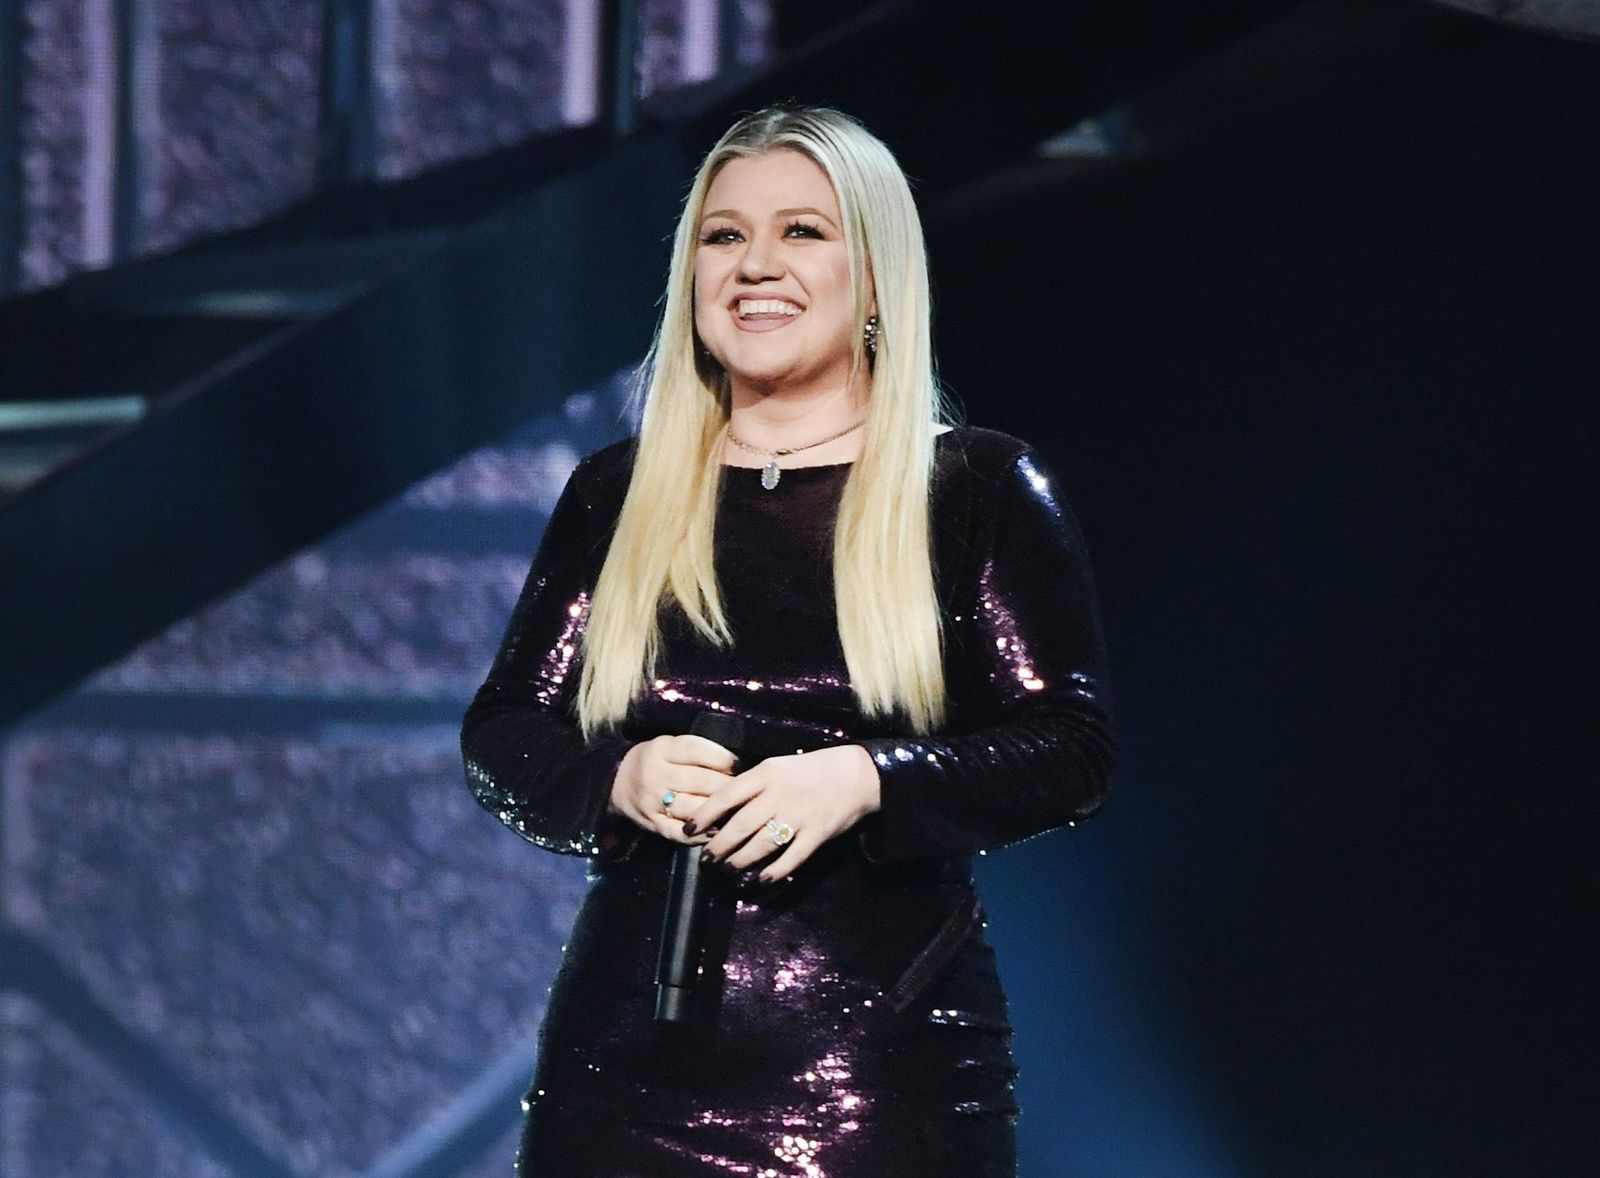 Kelly Clarkson performed onstage during the 53rd Academy of Country Music Awards at MGM Grand Garden Arena on April 15, 2018 in Las Vegas, Nevada | Photo: Getty Images